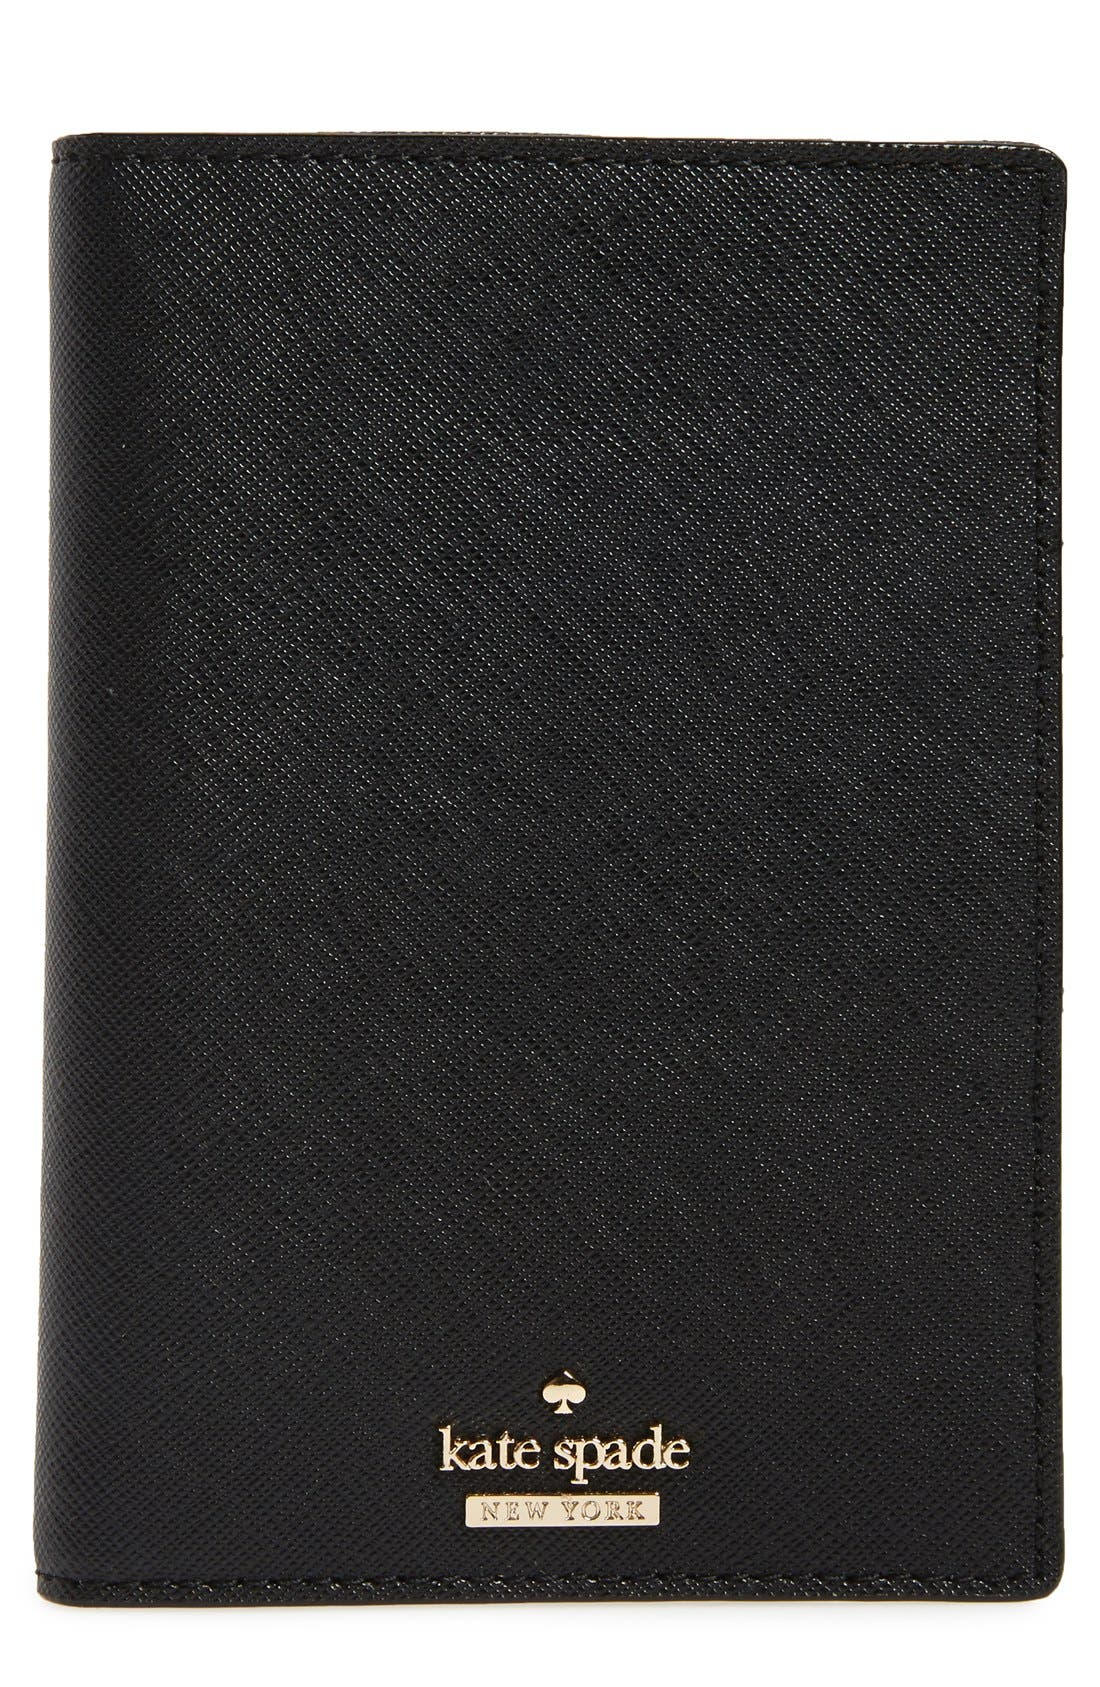 kate spade new york 'cameron street' leather passport holder